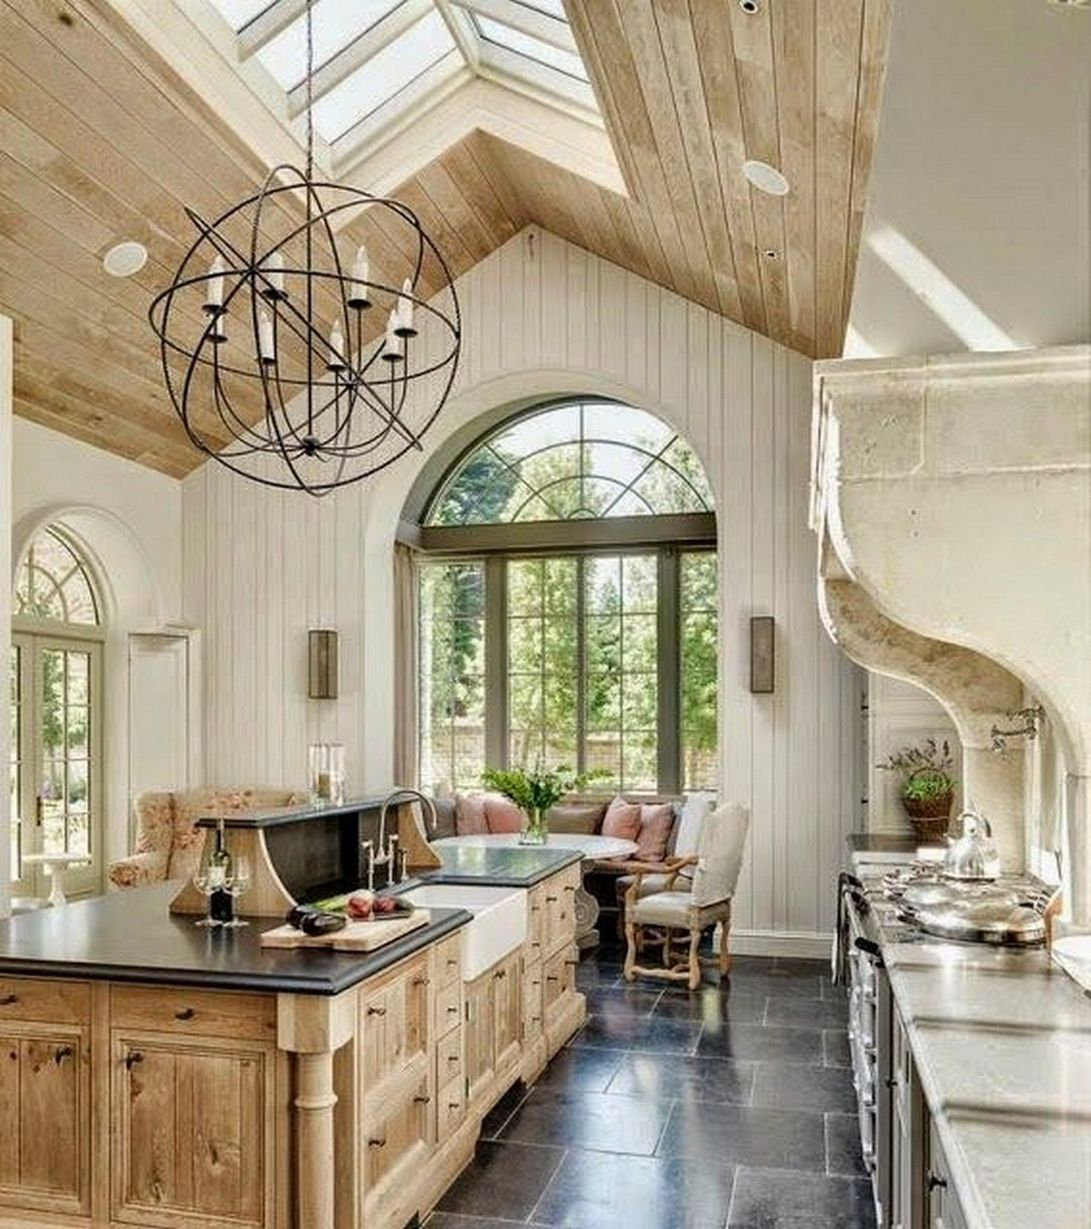 50 Best French Country Kitchens Design Ideas Remodel Pict Pinterest Kitchens Kitchen